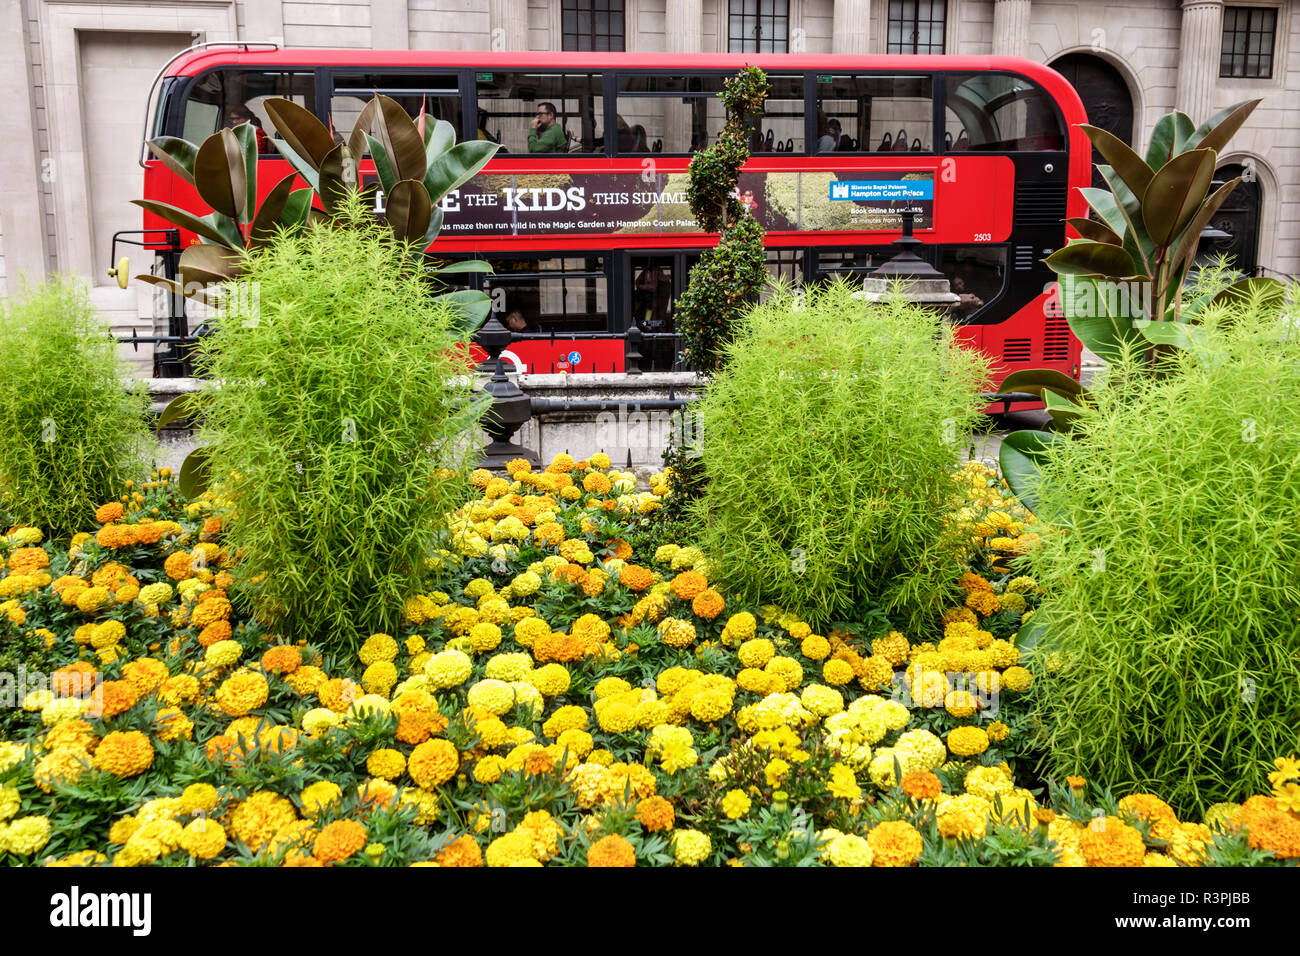 London England Great Britain United Kingdom City of London financial centre center Royal Exchange building outside exterior plaza garden flowers mums - Stock Image